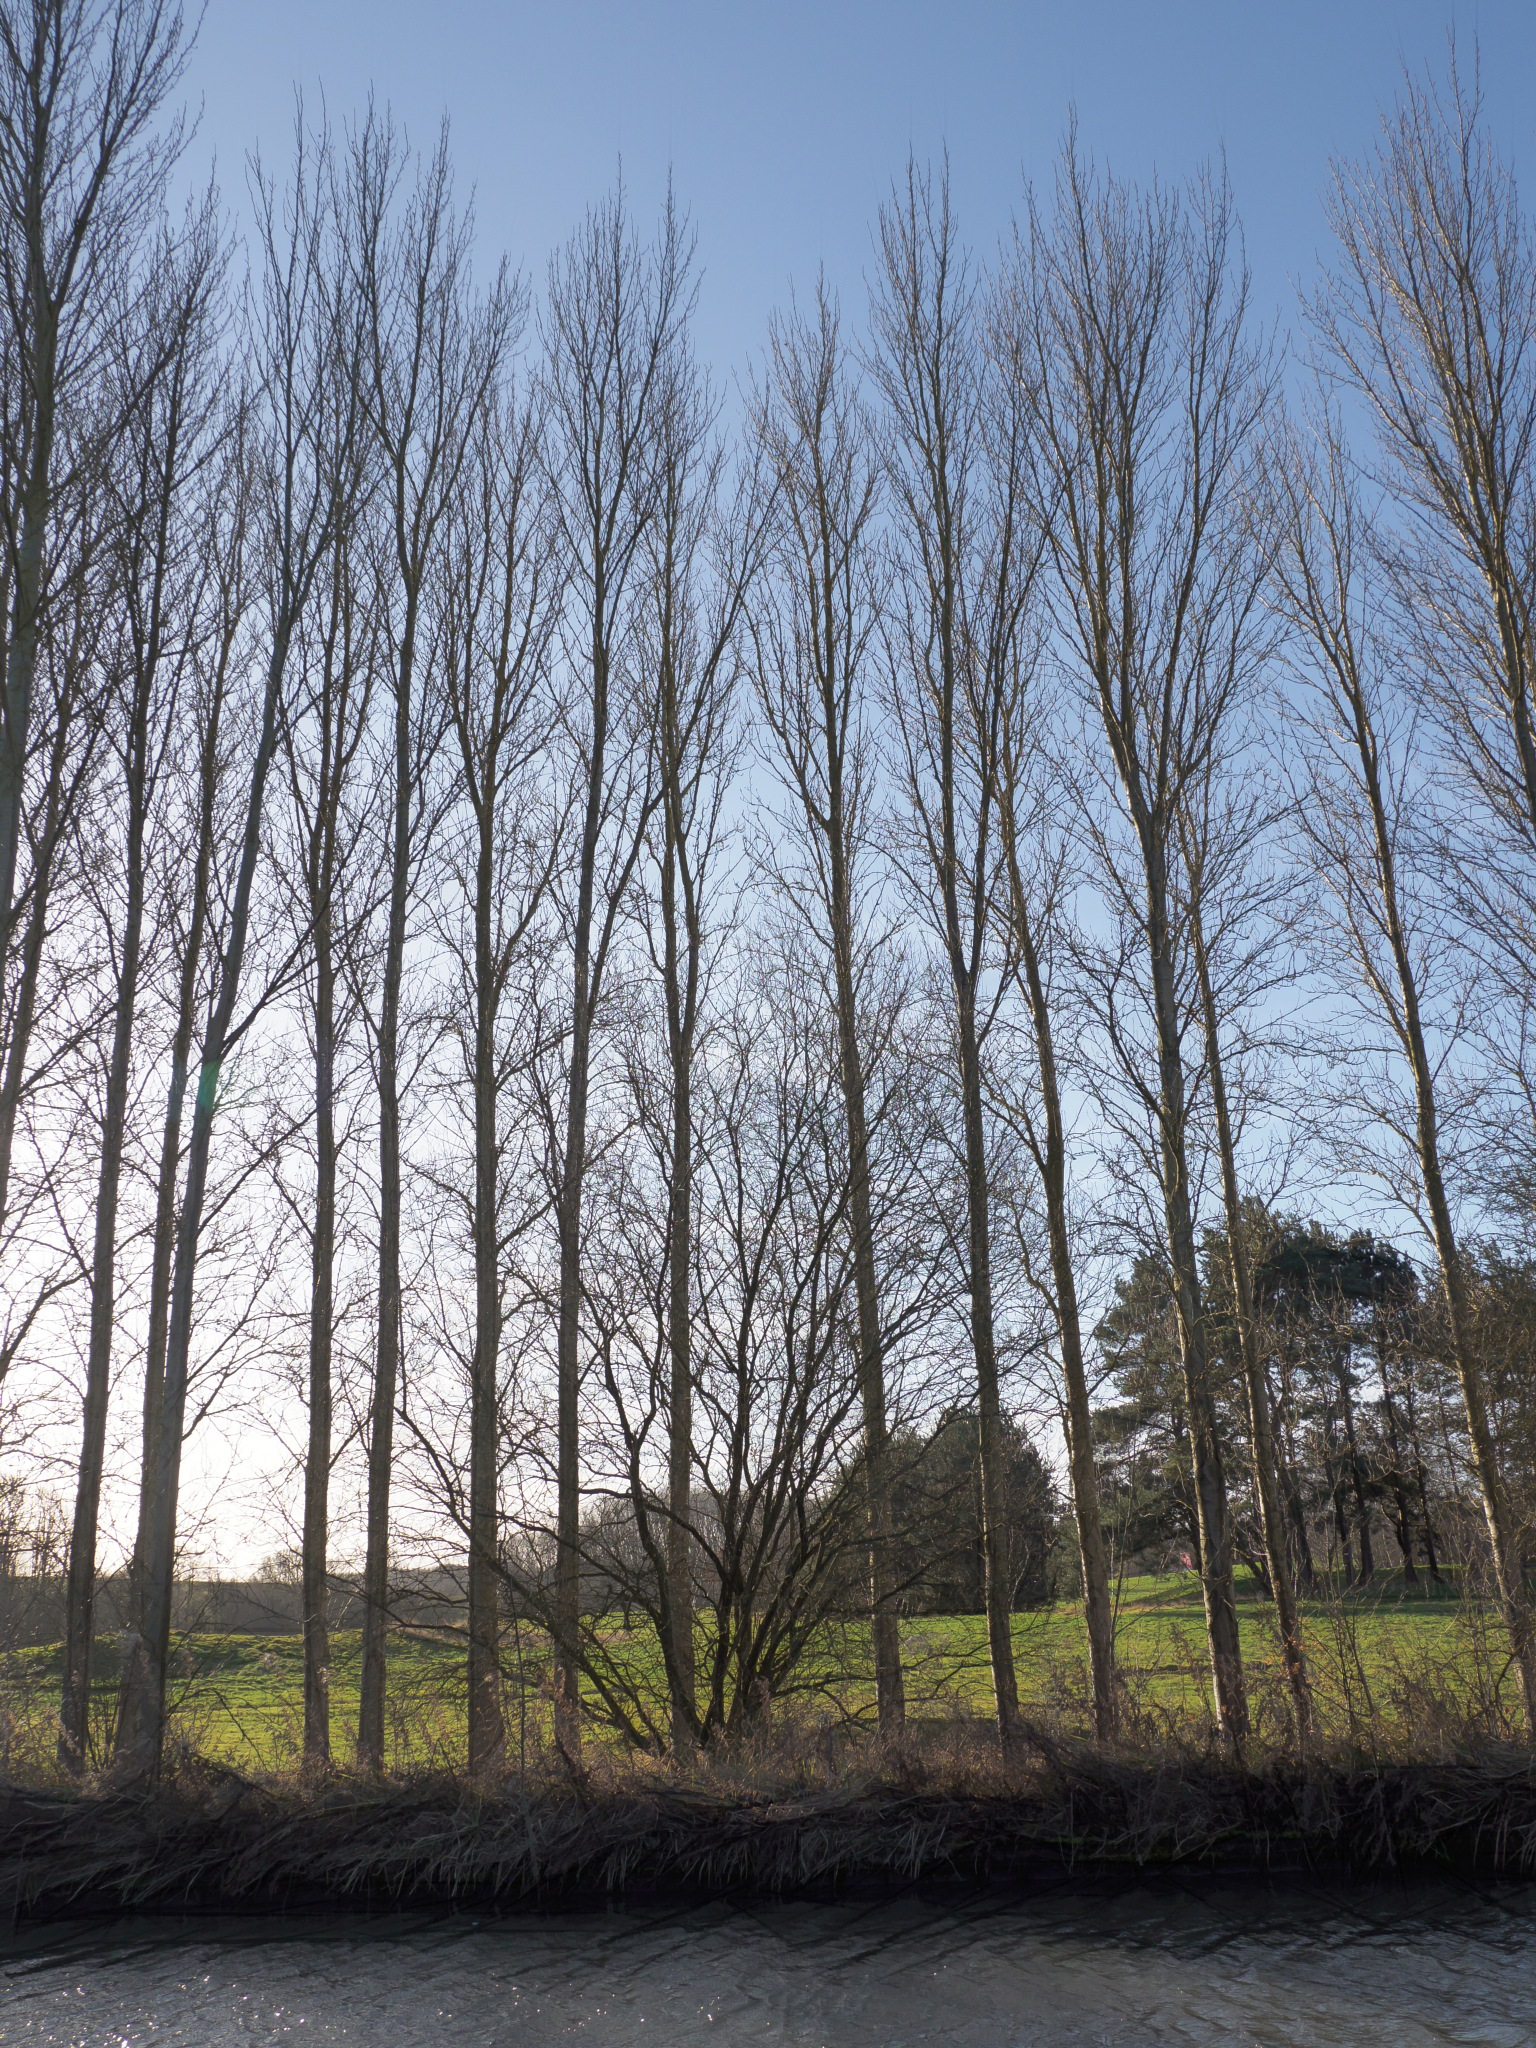 Poplars and Hawthorn by Sarah Walters